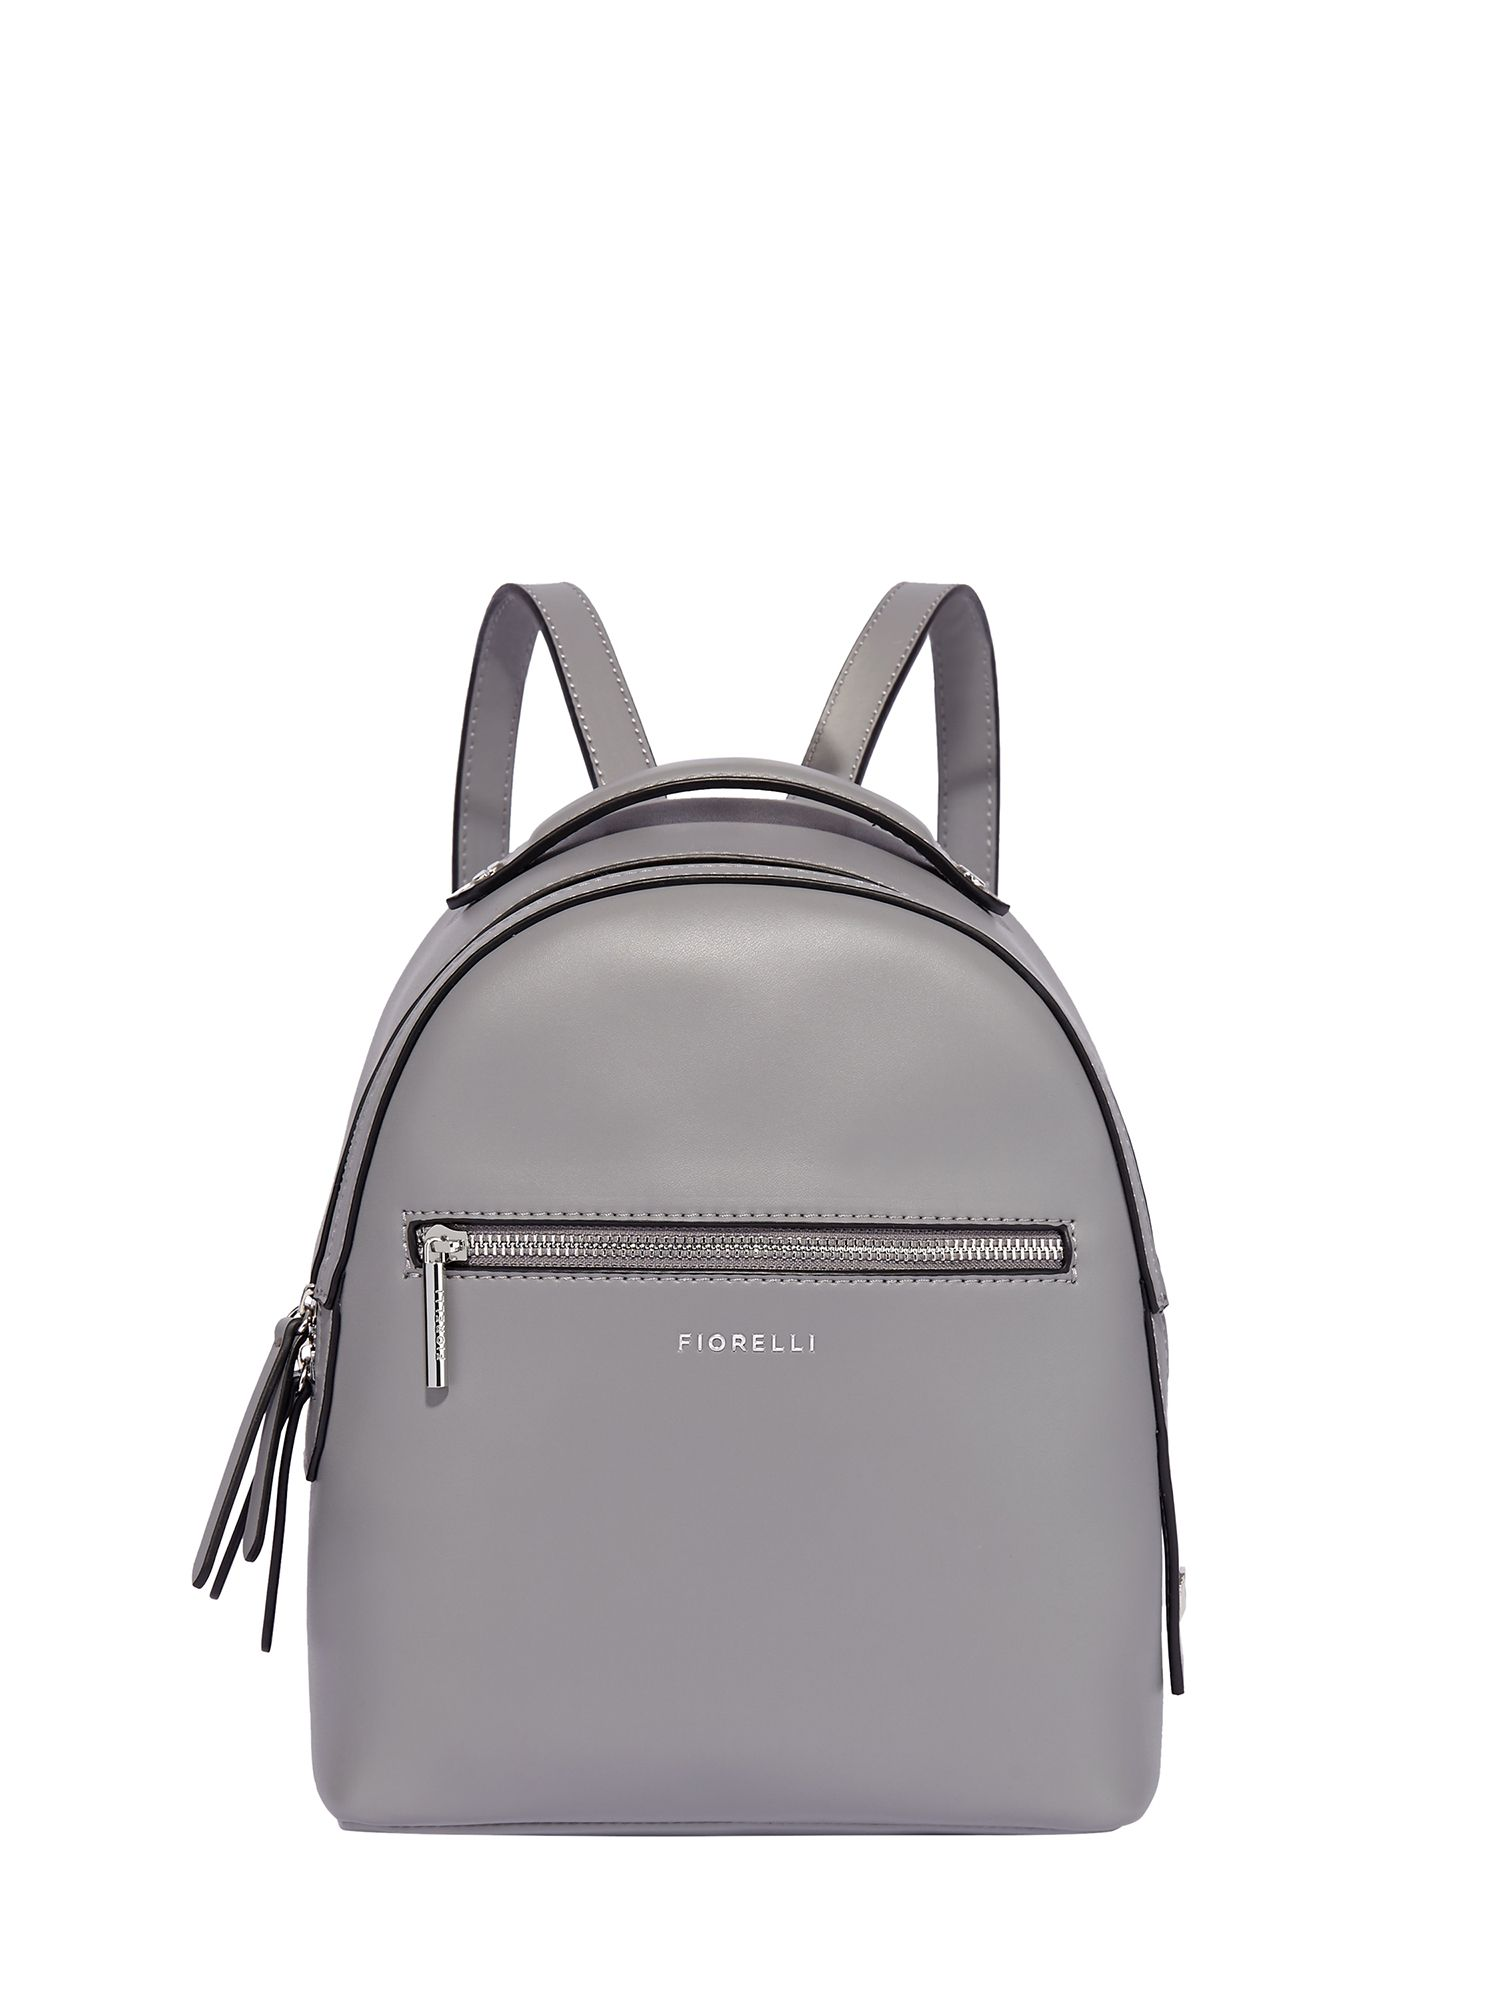 Fiorelli Anouk small backpack, Grey